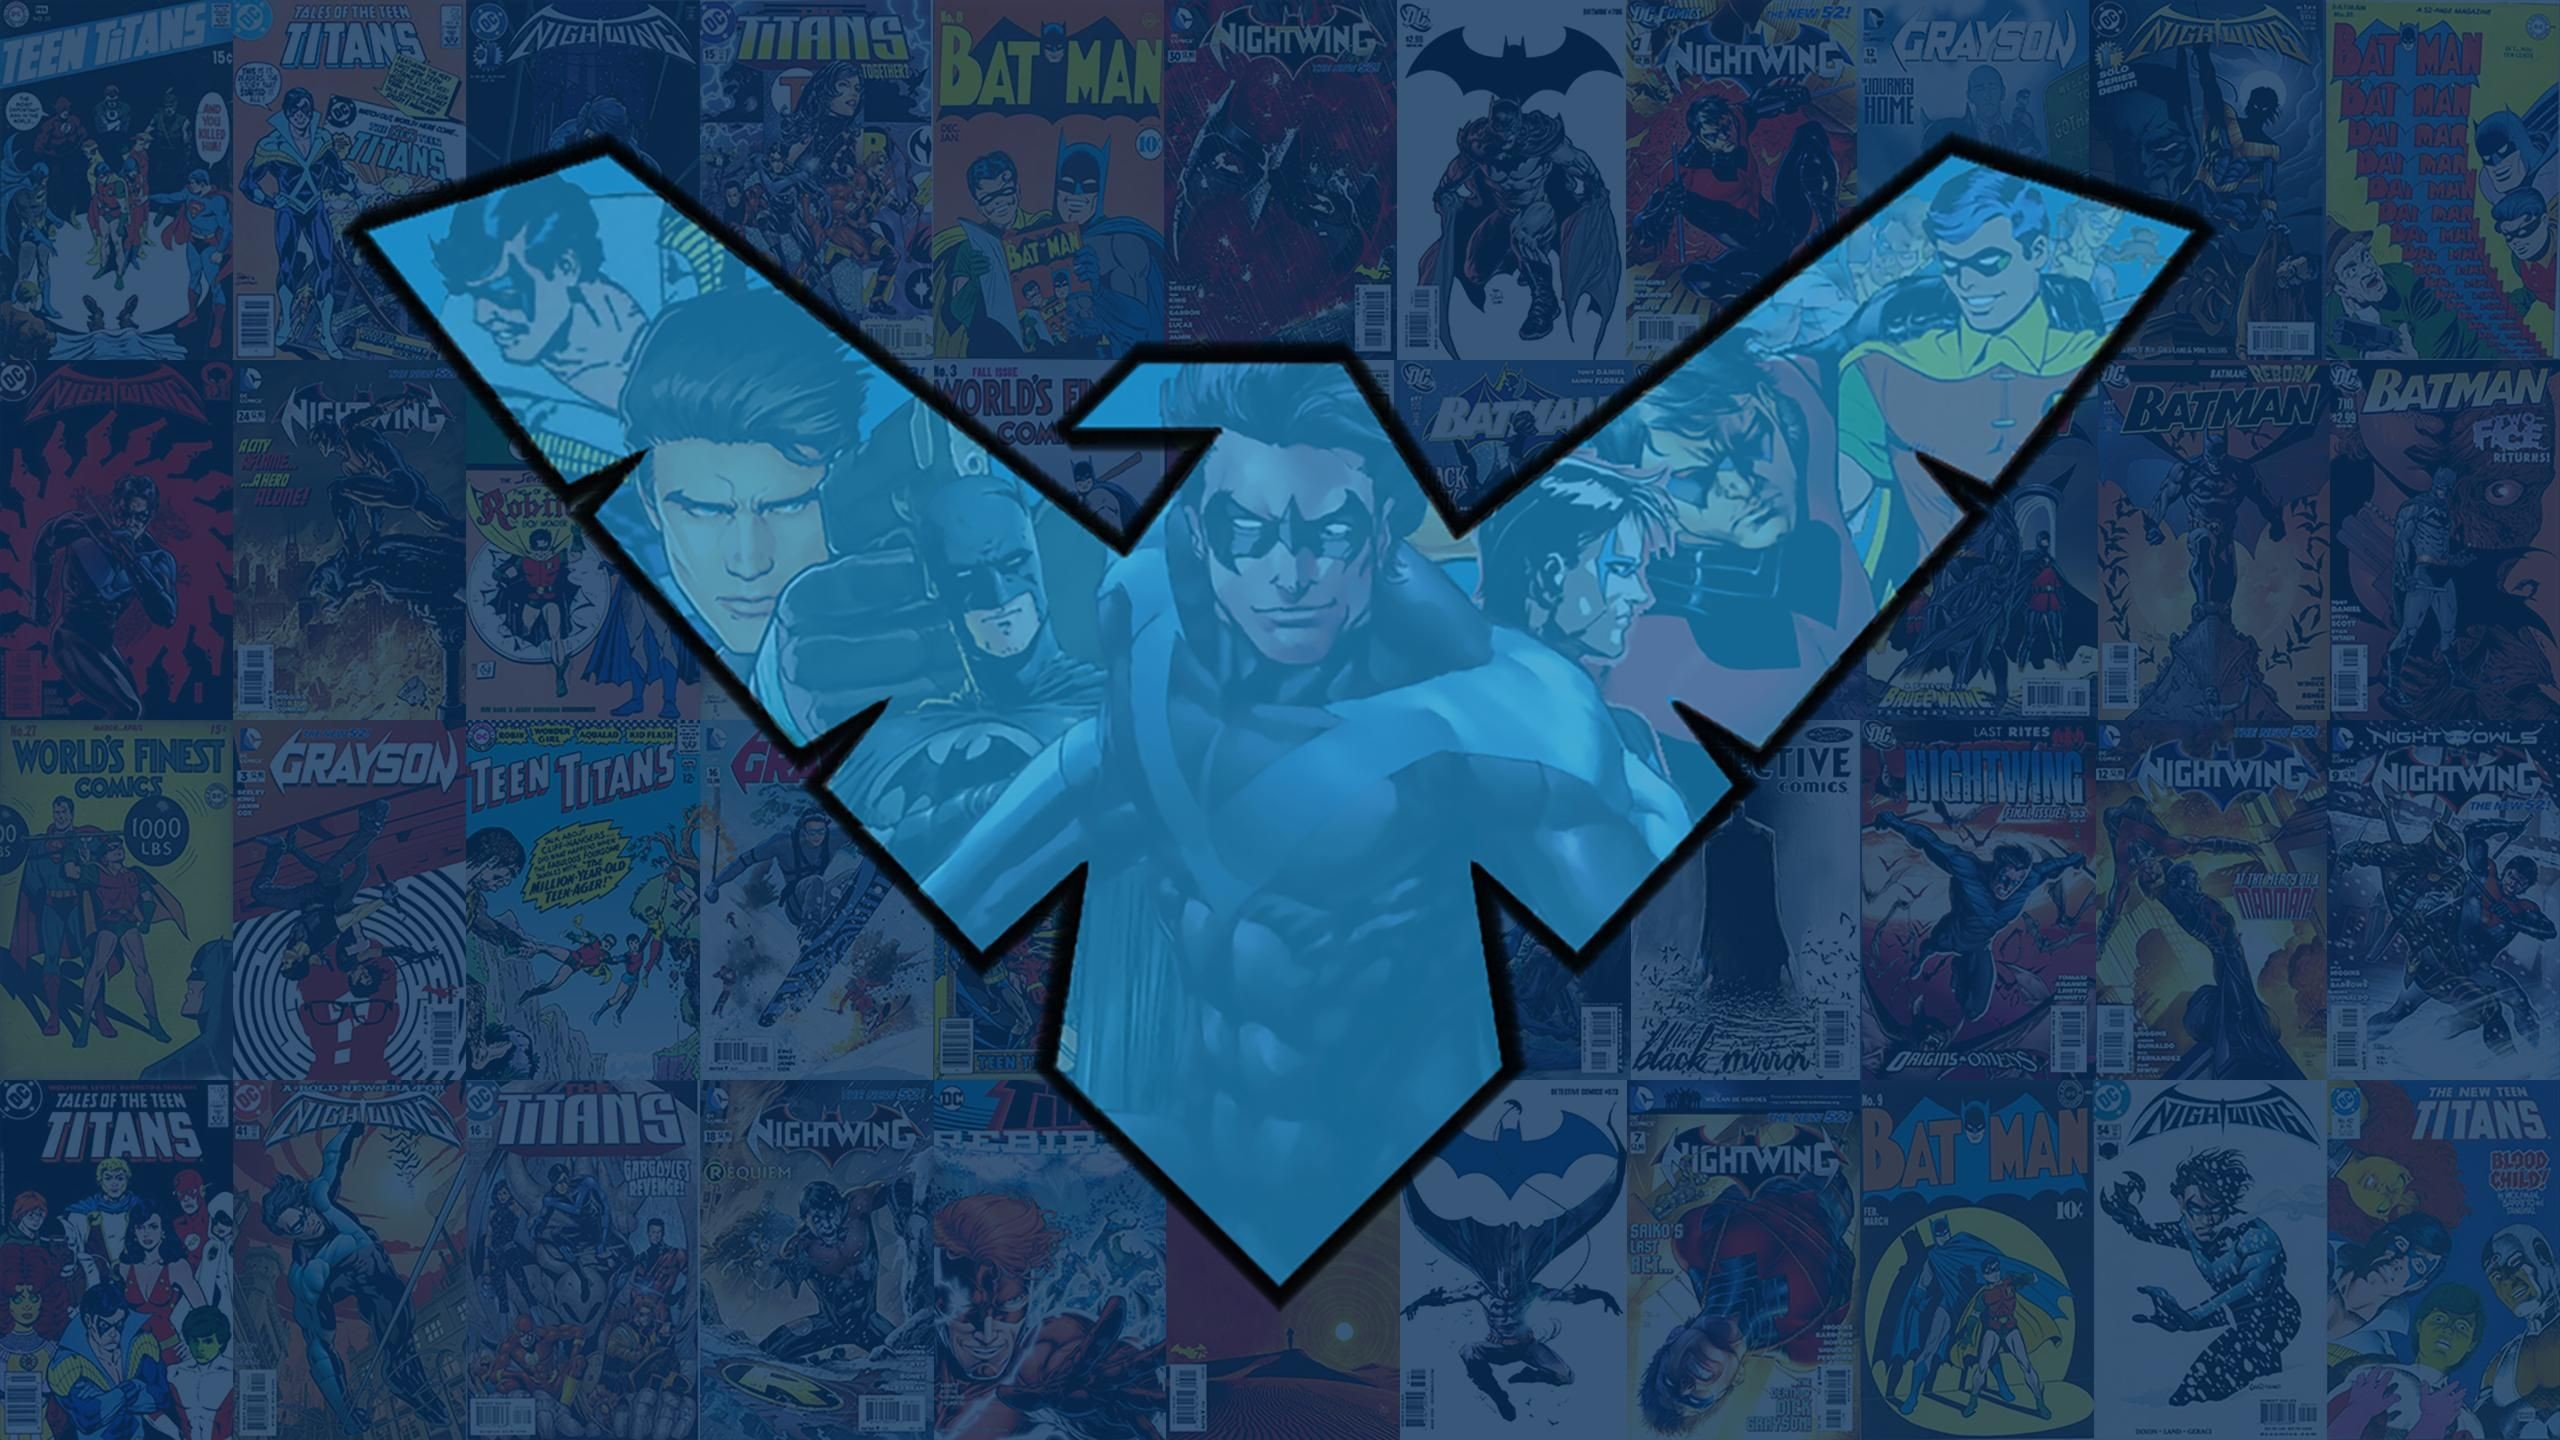 Res: 2560x1440, Batman Nightwing Android Central